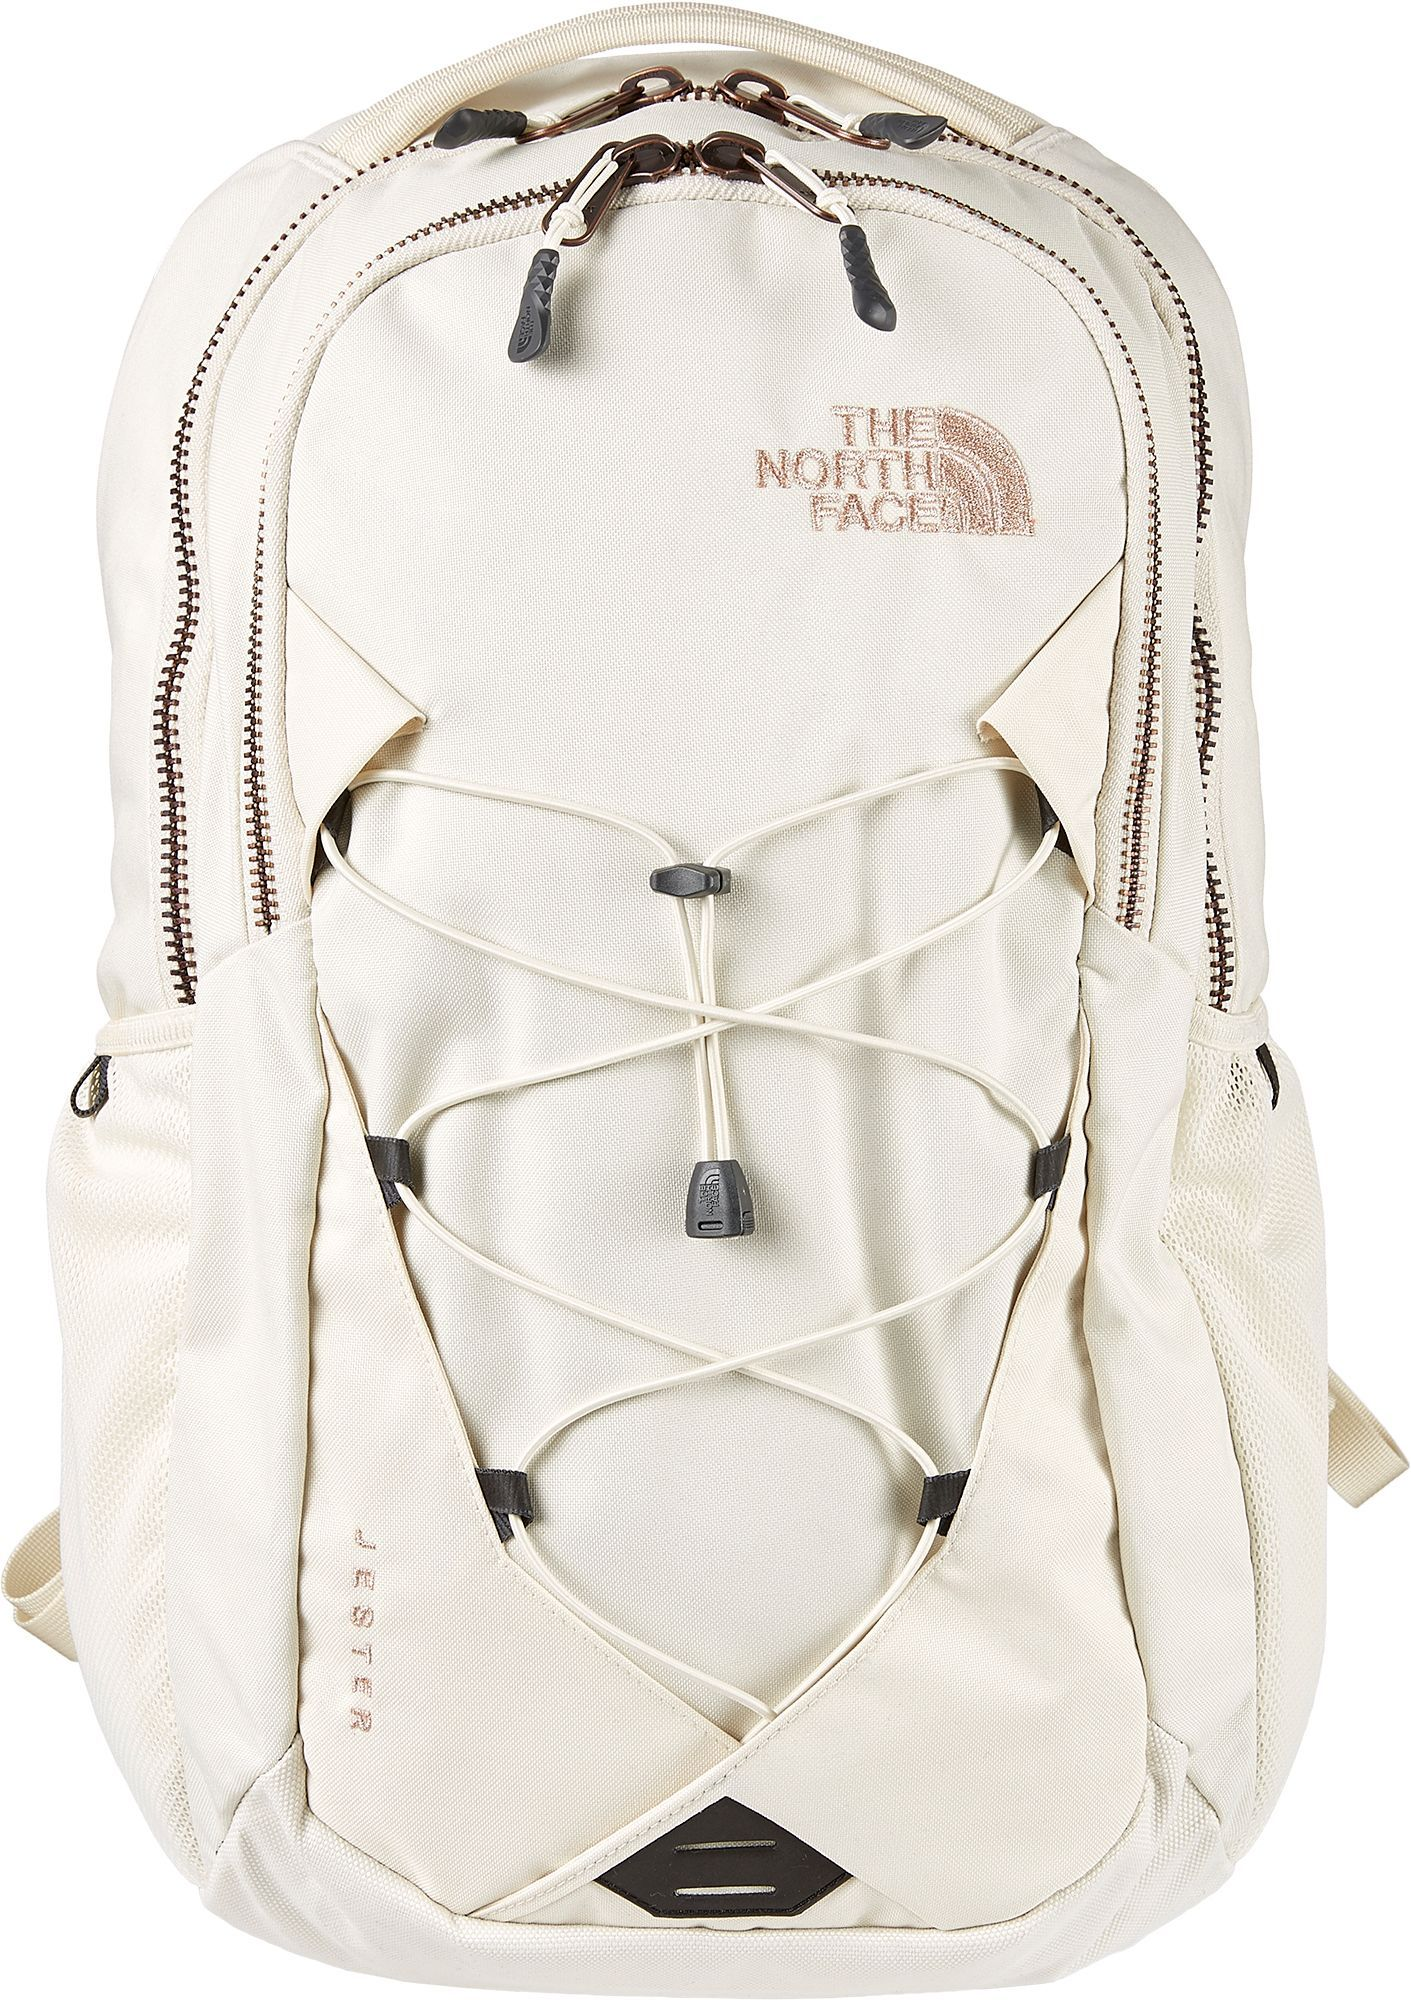 664ab89d1 The North Face Women's Jester Luxe Backpack, Black in 2019 ...